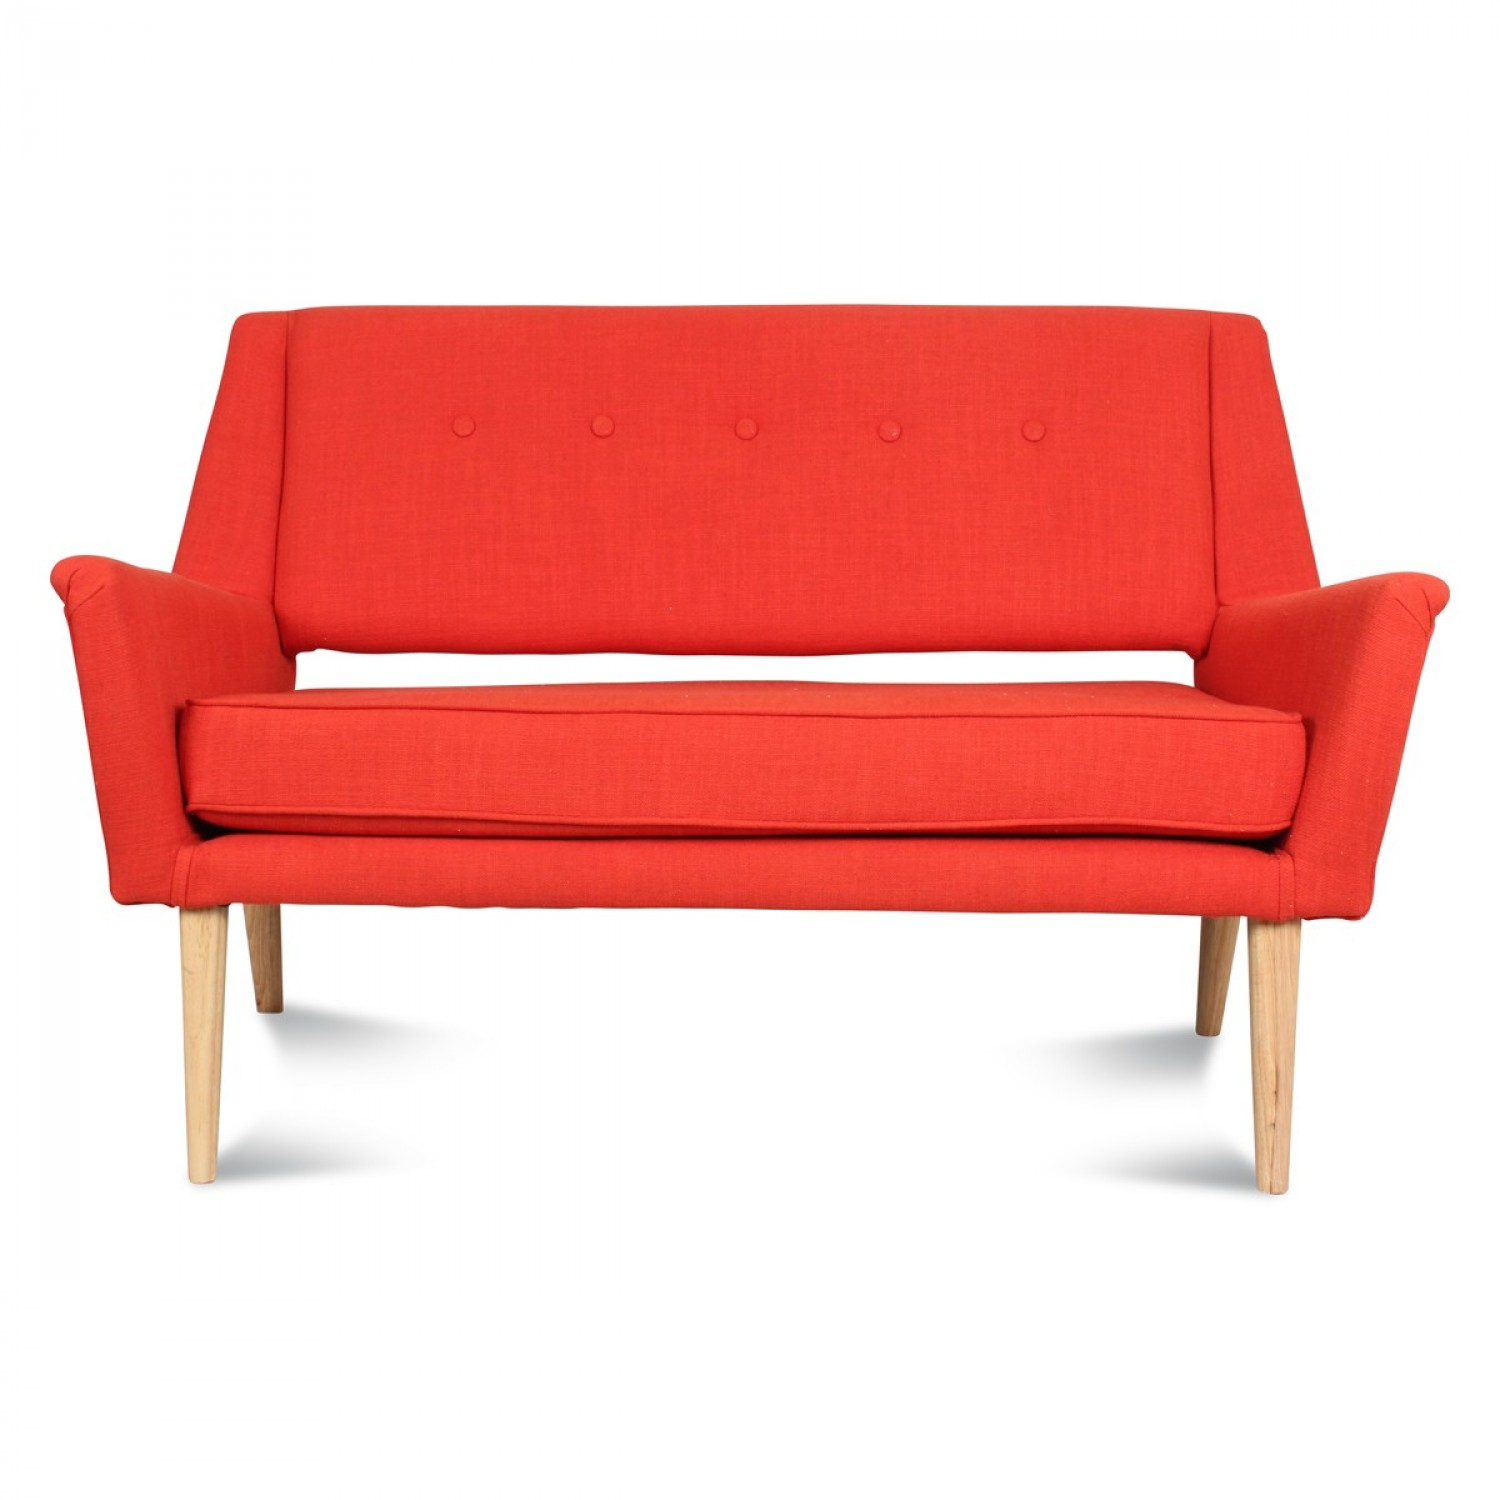 Canape 2 places bros design scandinave cpe2p bros opj - Canape 2 places scandinave ...